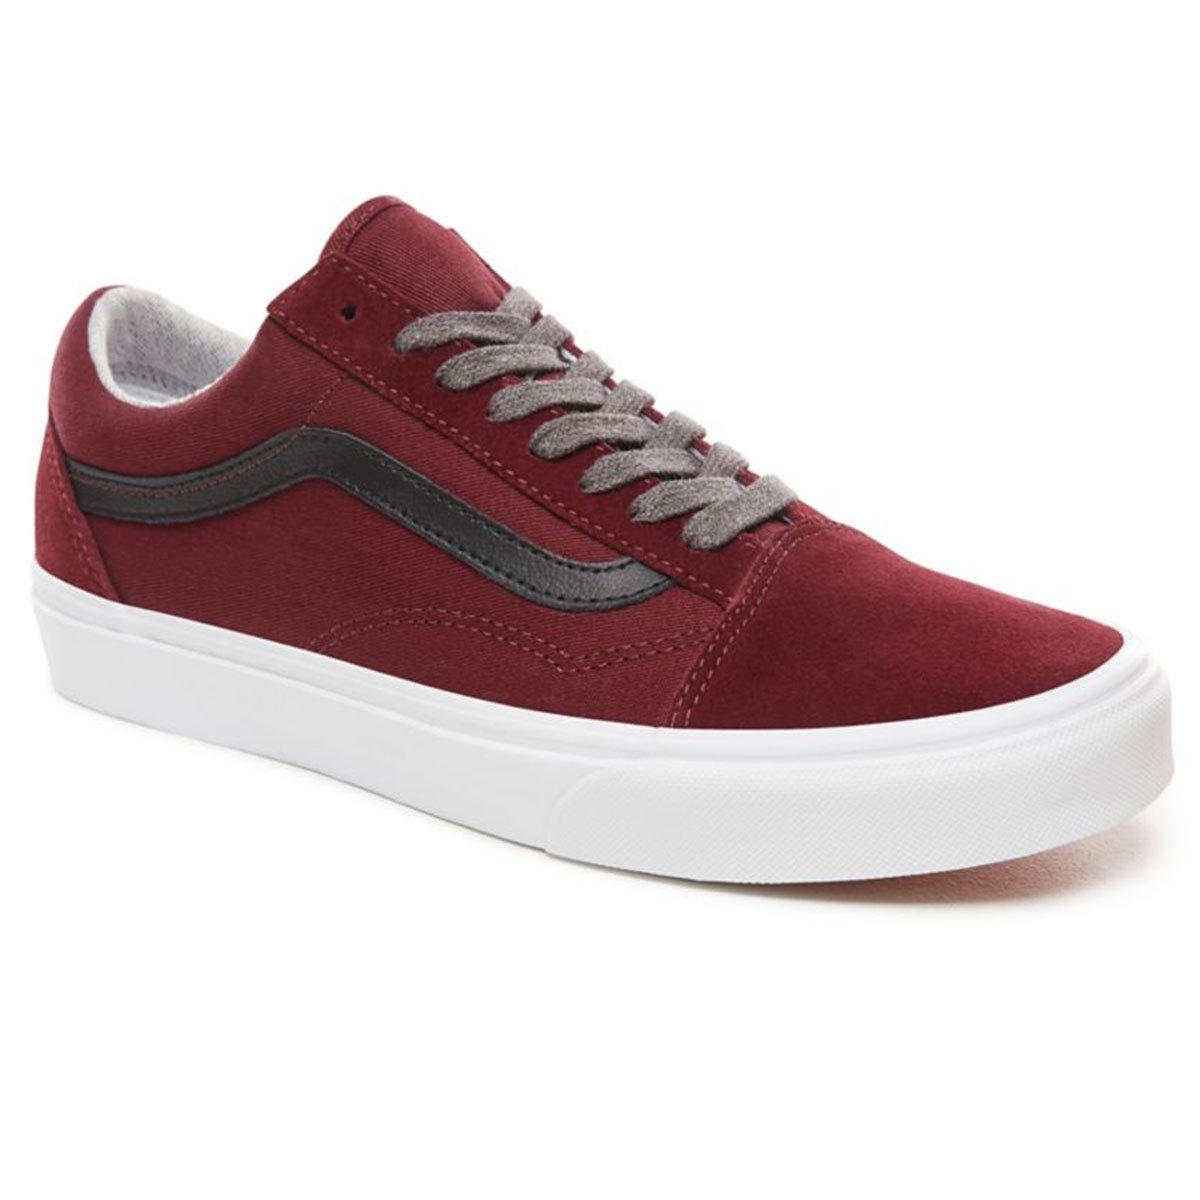 Old Skool Jersey Lace Skate Shoes